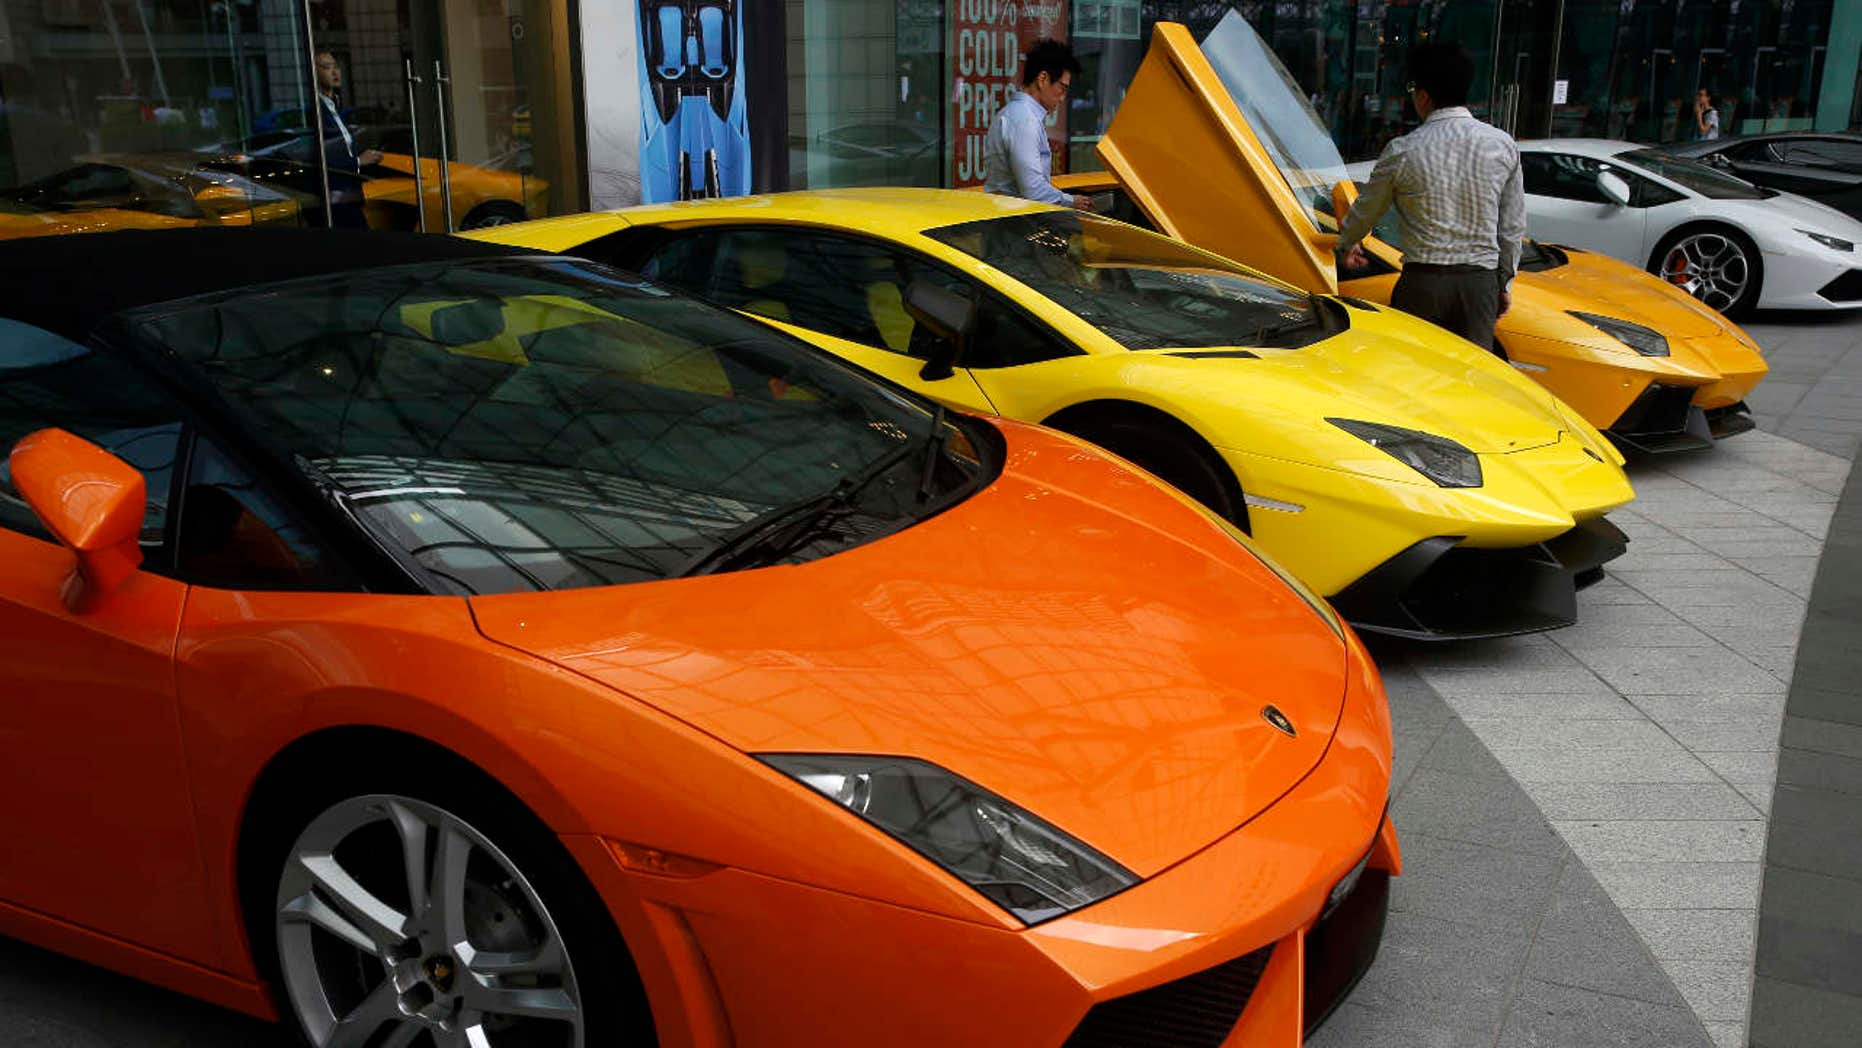 Men look at a Lamborghini car outside a showroom in Singapore's central business district.